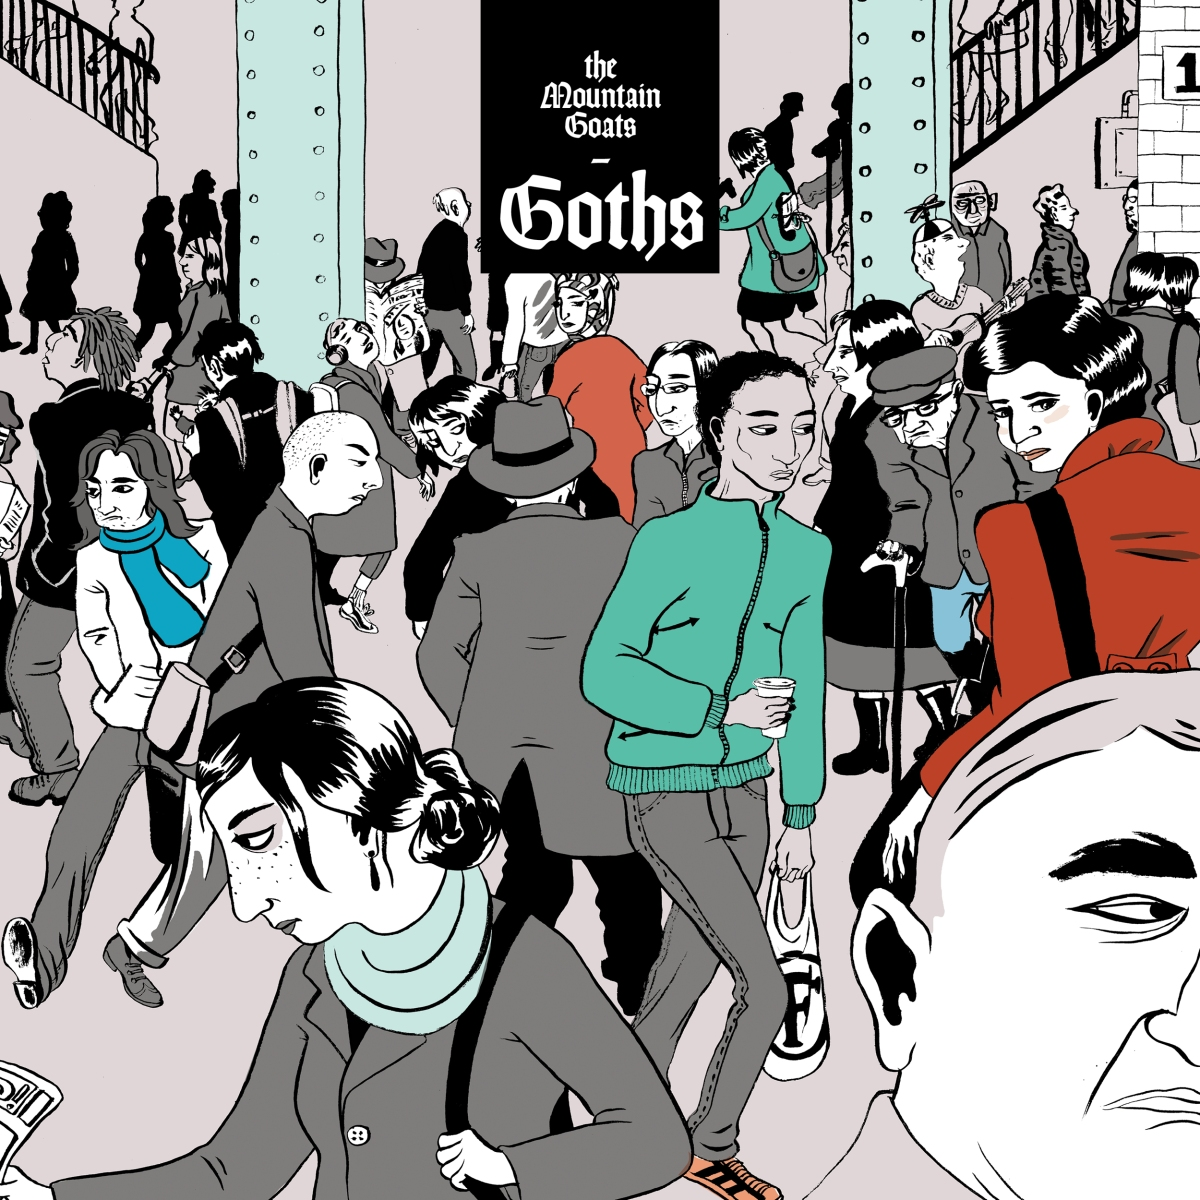 May 2017, Best Indie Pop Album of the Month: Goths by The MountainGoats